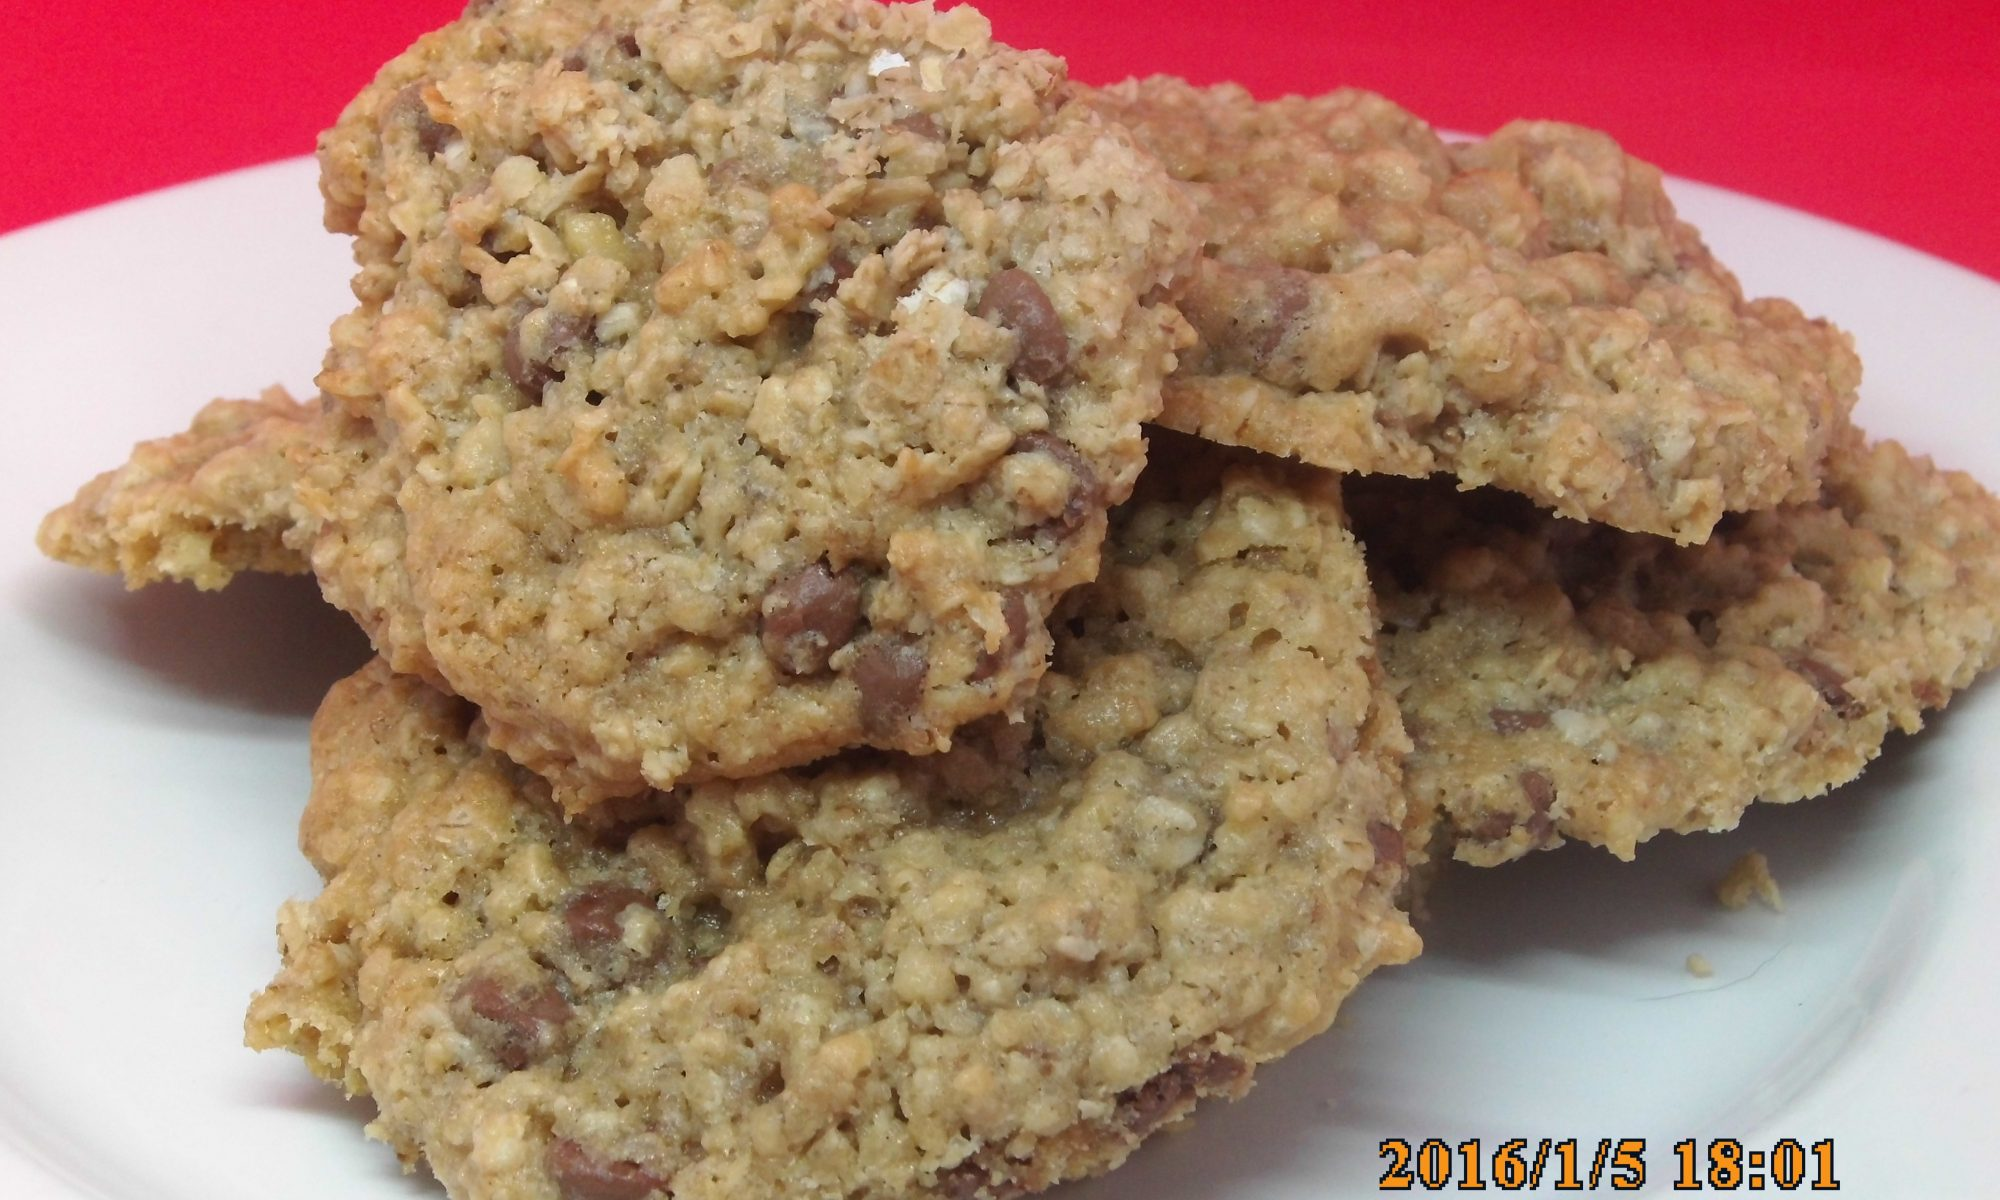 Chewy Oat, Nut & Chocolate Chip Cookies